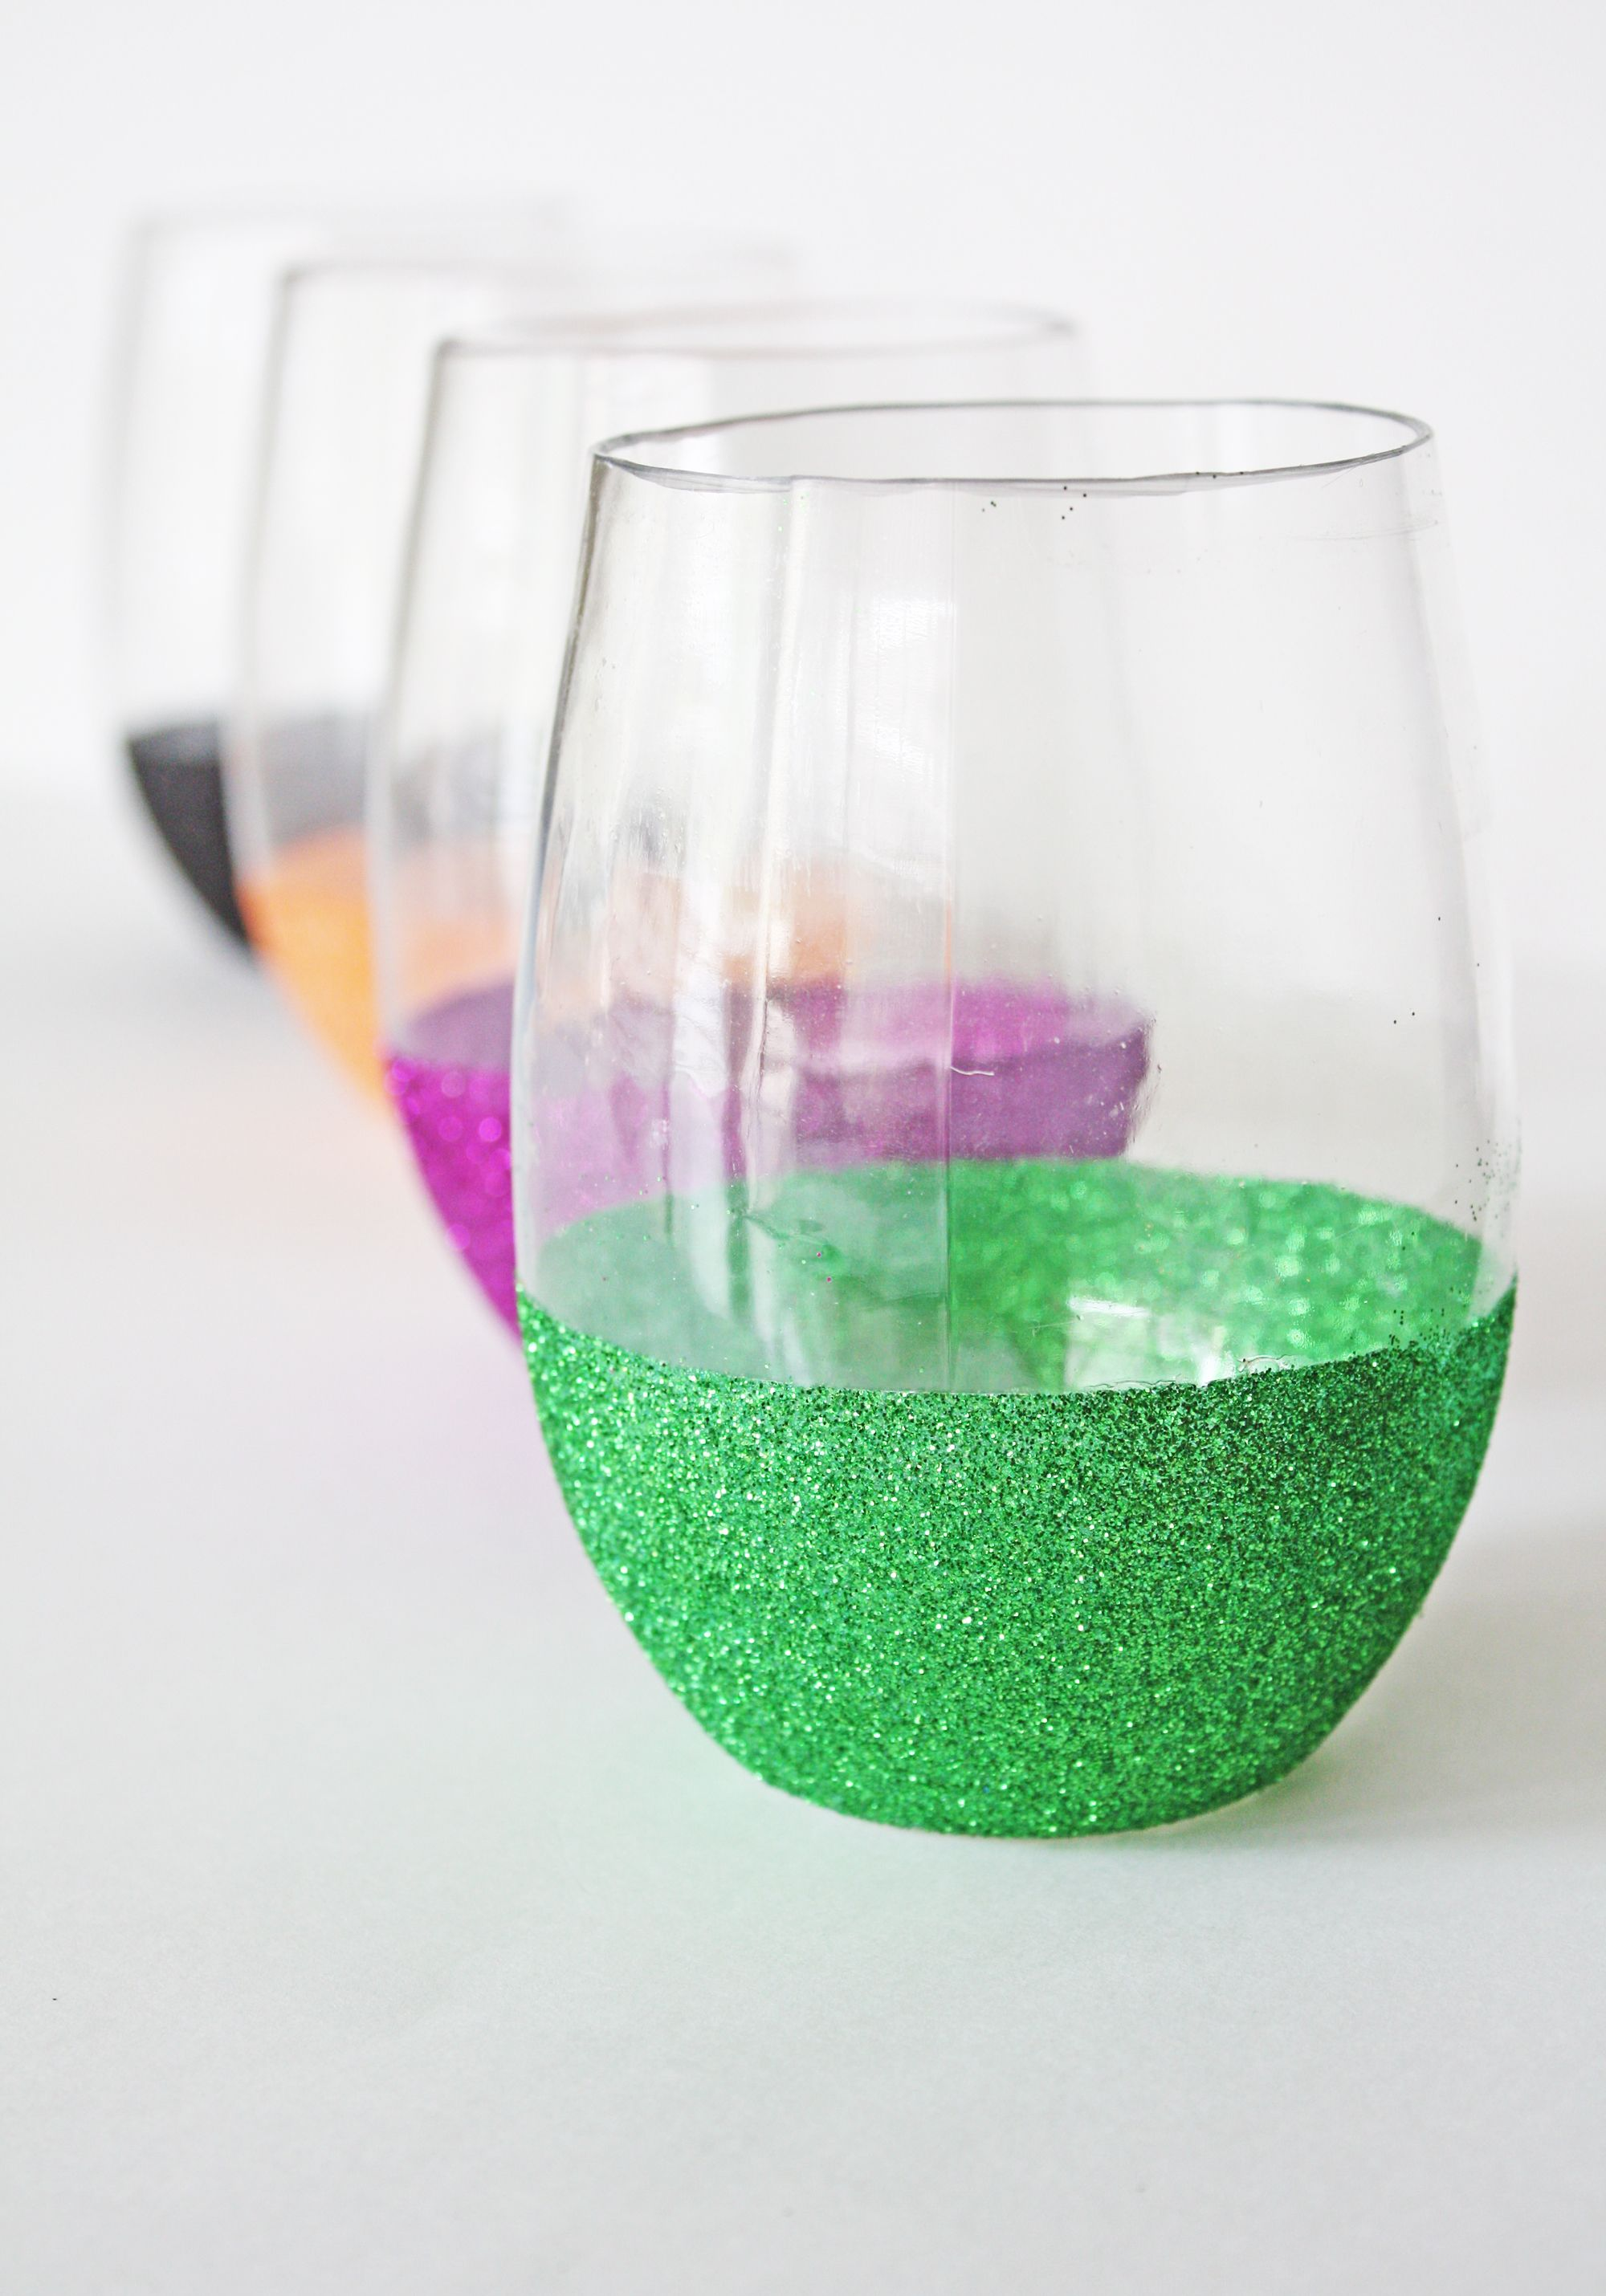 What You Ll Need Plastic Stemless Wine Glasses Glitter Assortment Mod Podge Washi Tape Or P Diy Wine Glasses Glitter Diy Wine Glasses Glitter Wine Glasses Diy